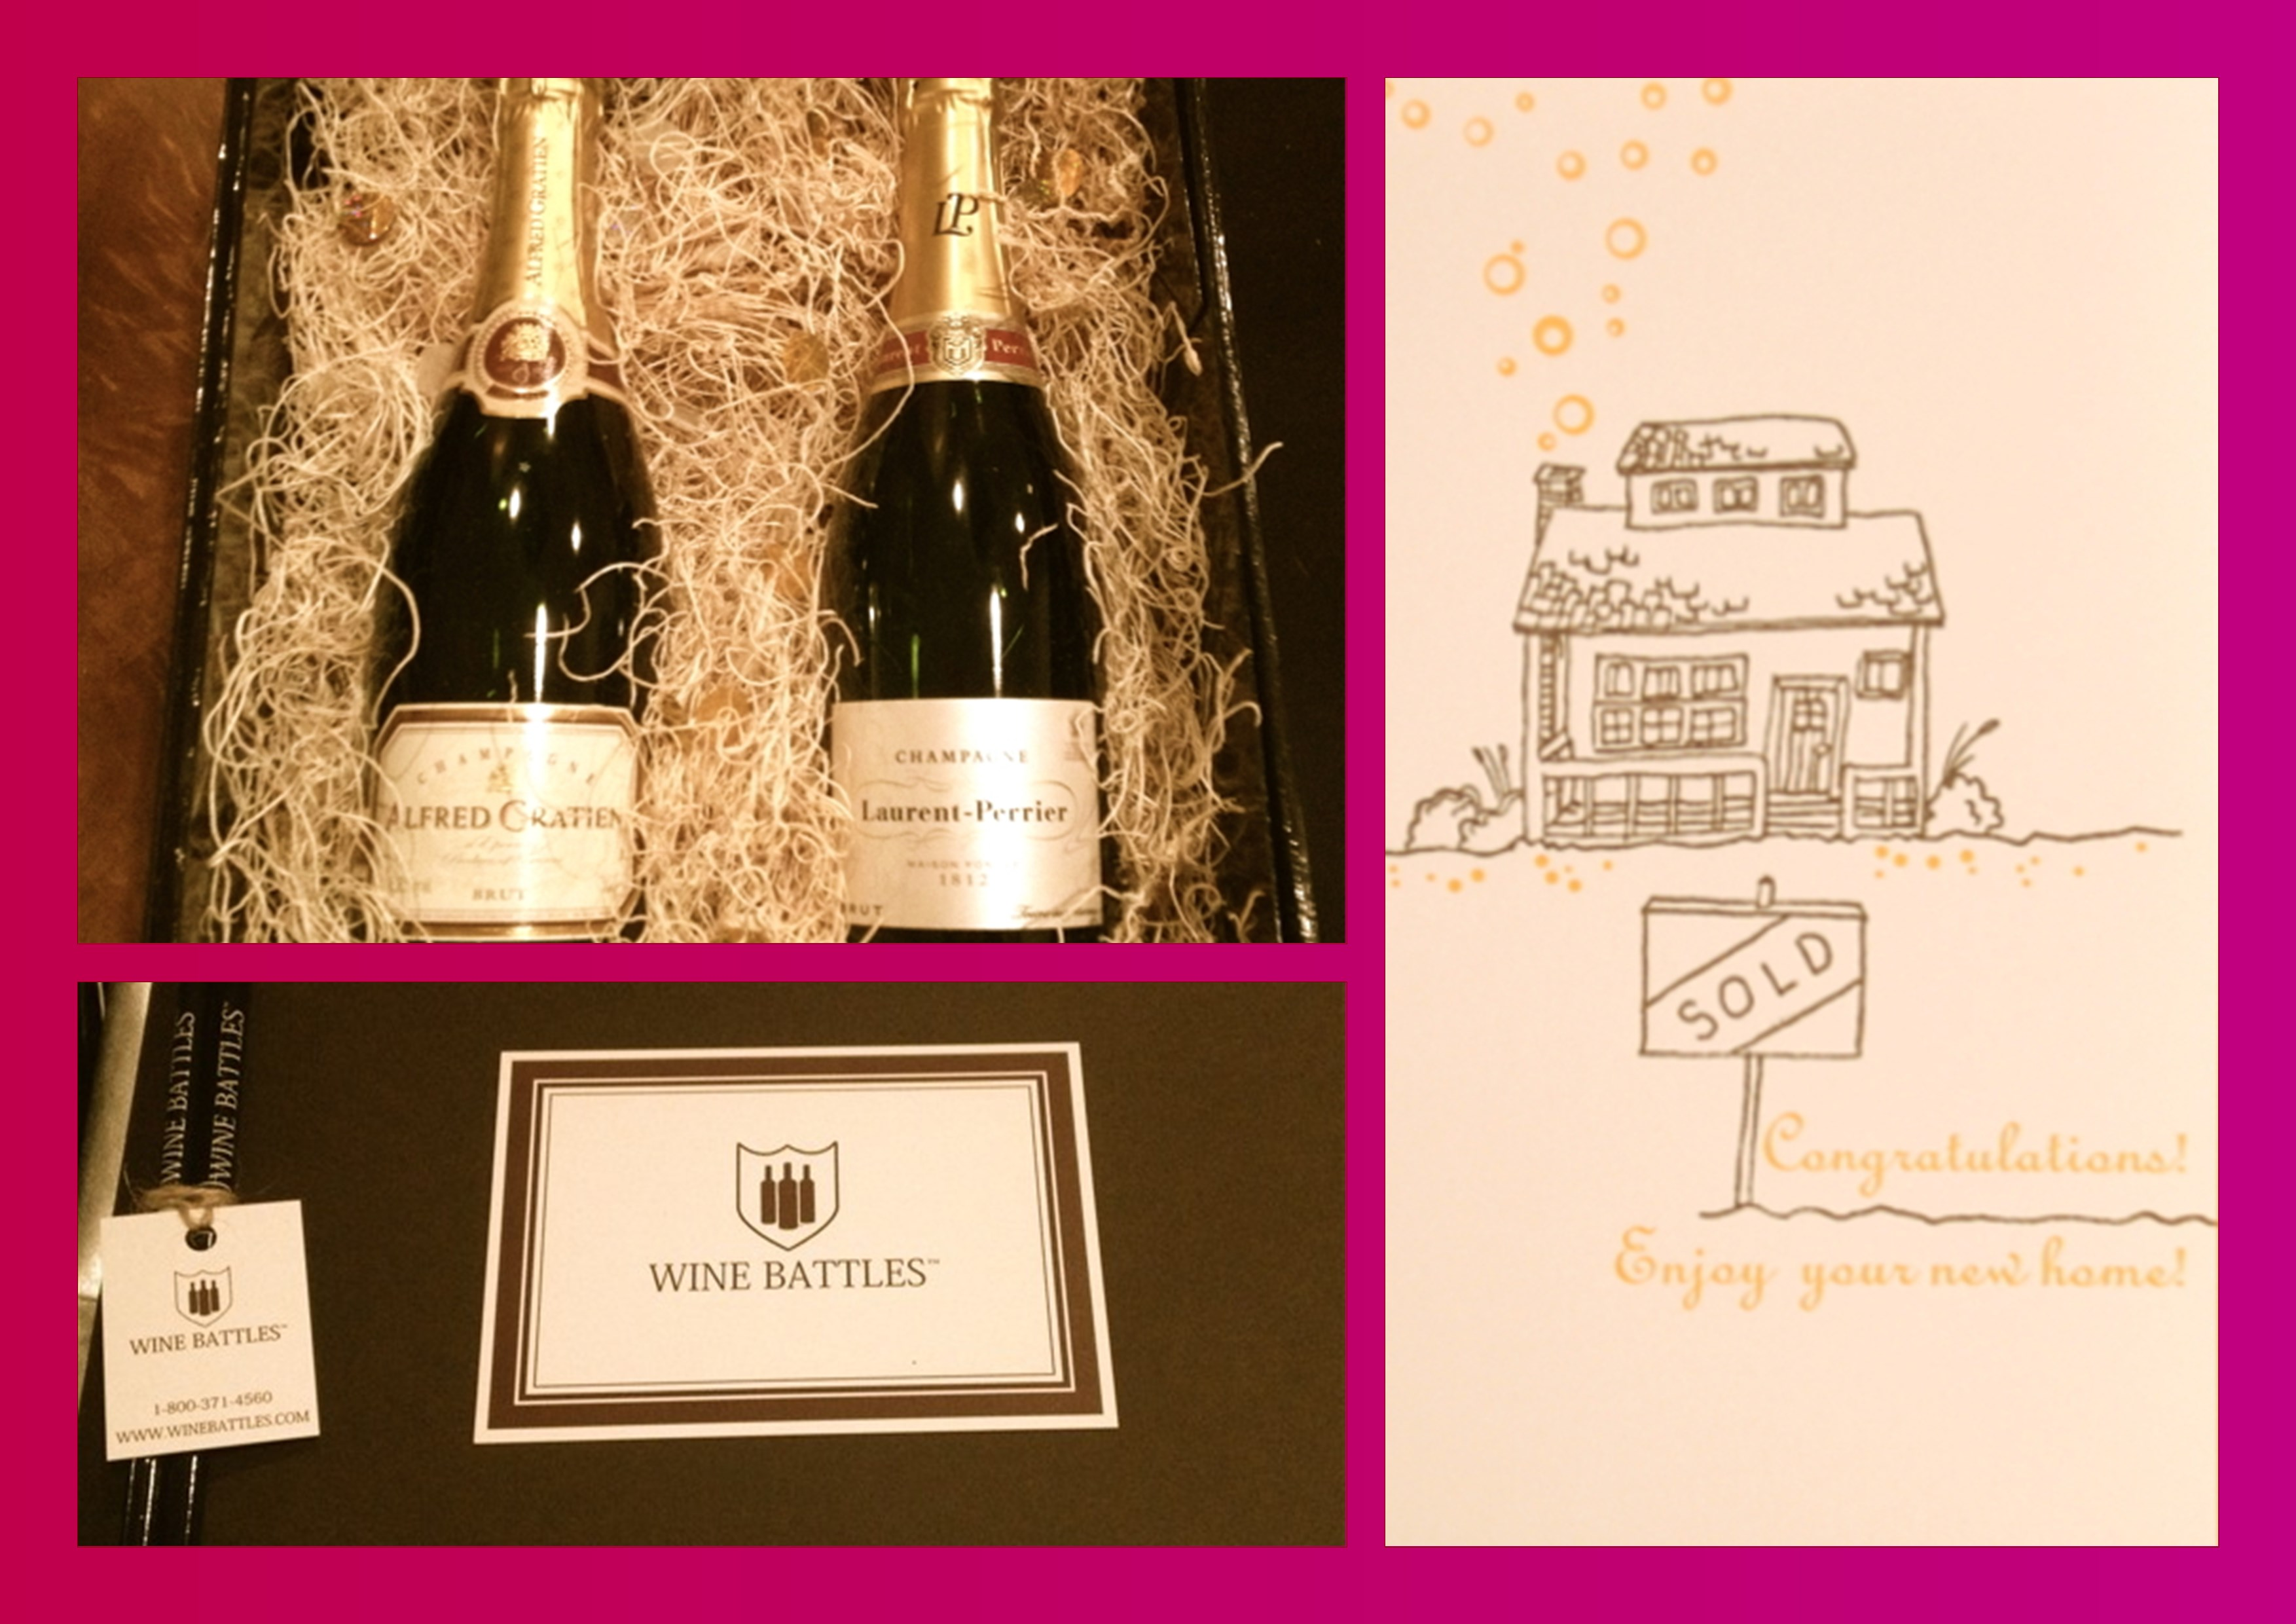 Wine Battles Congratulations on Your New Home Realtor Closing Gift